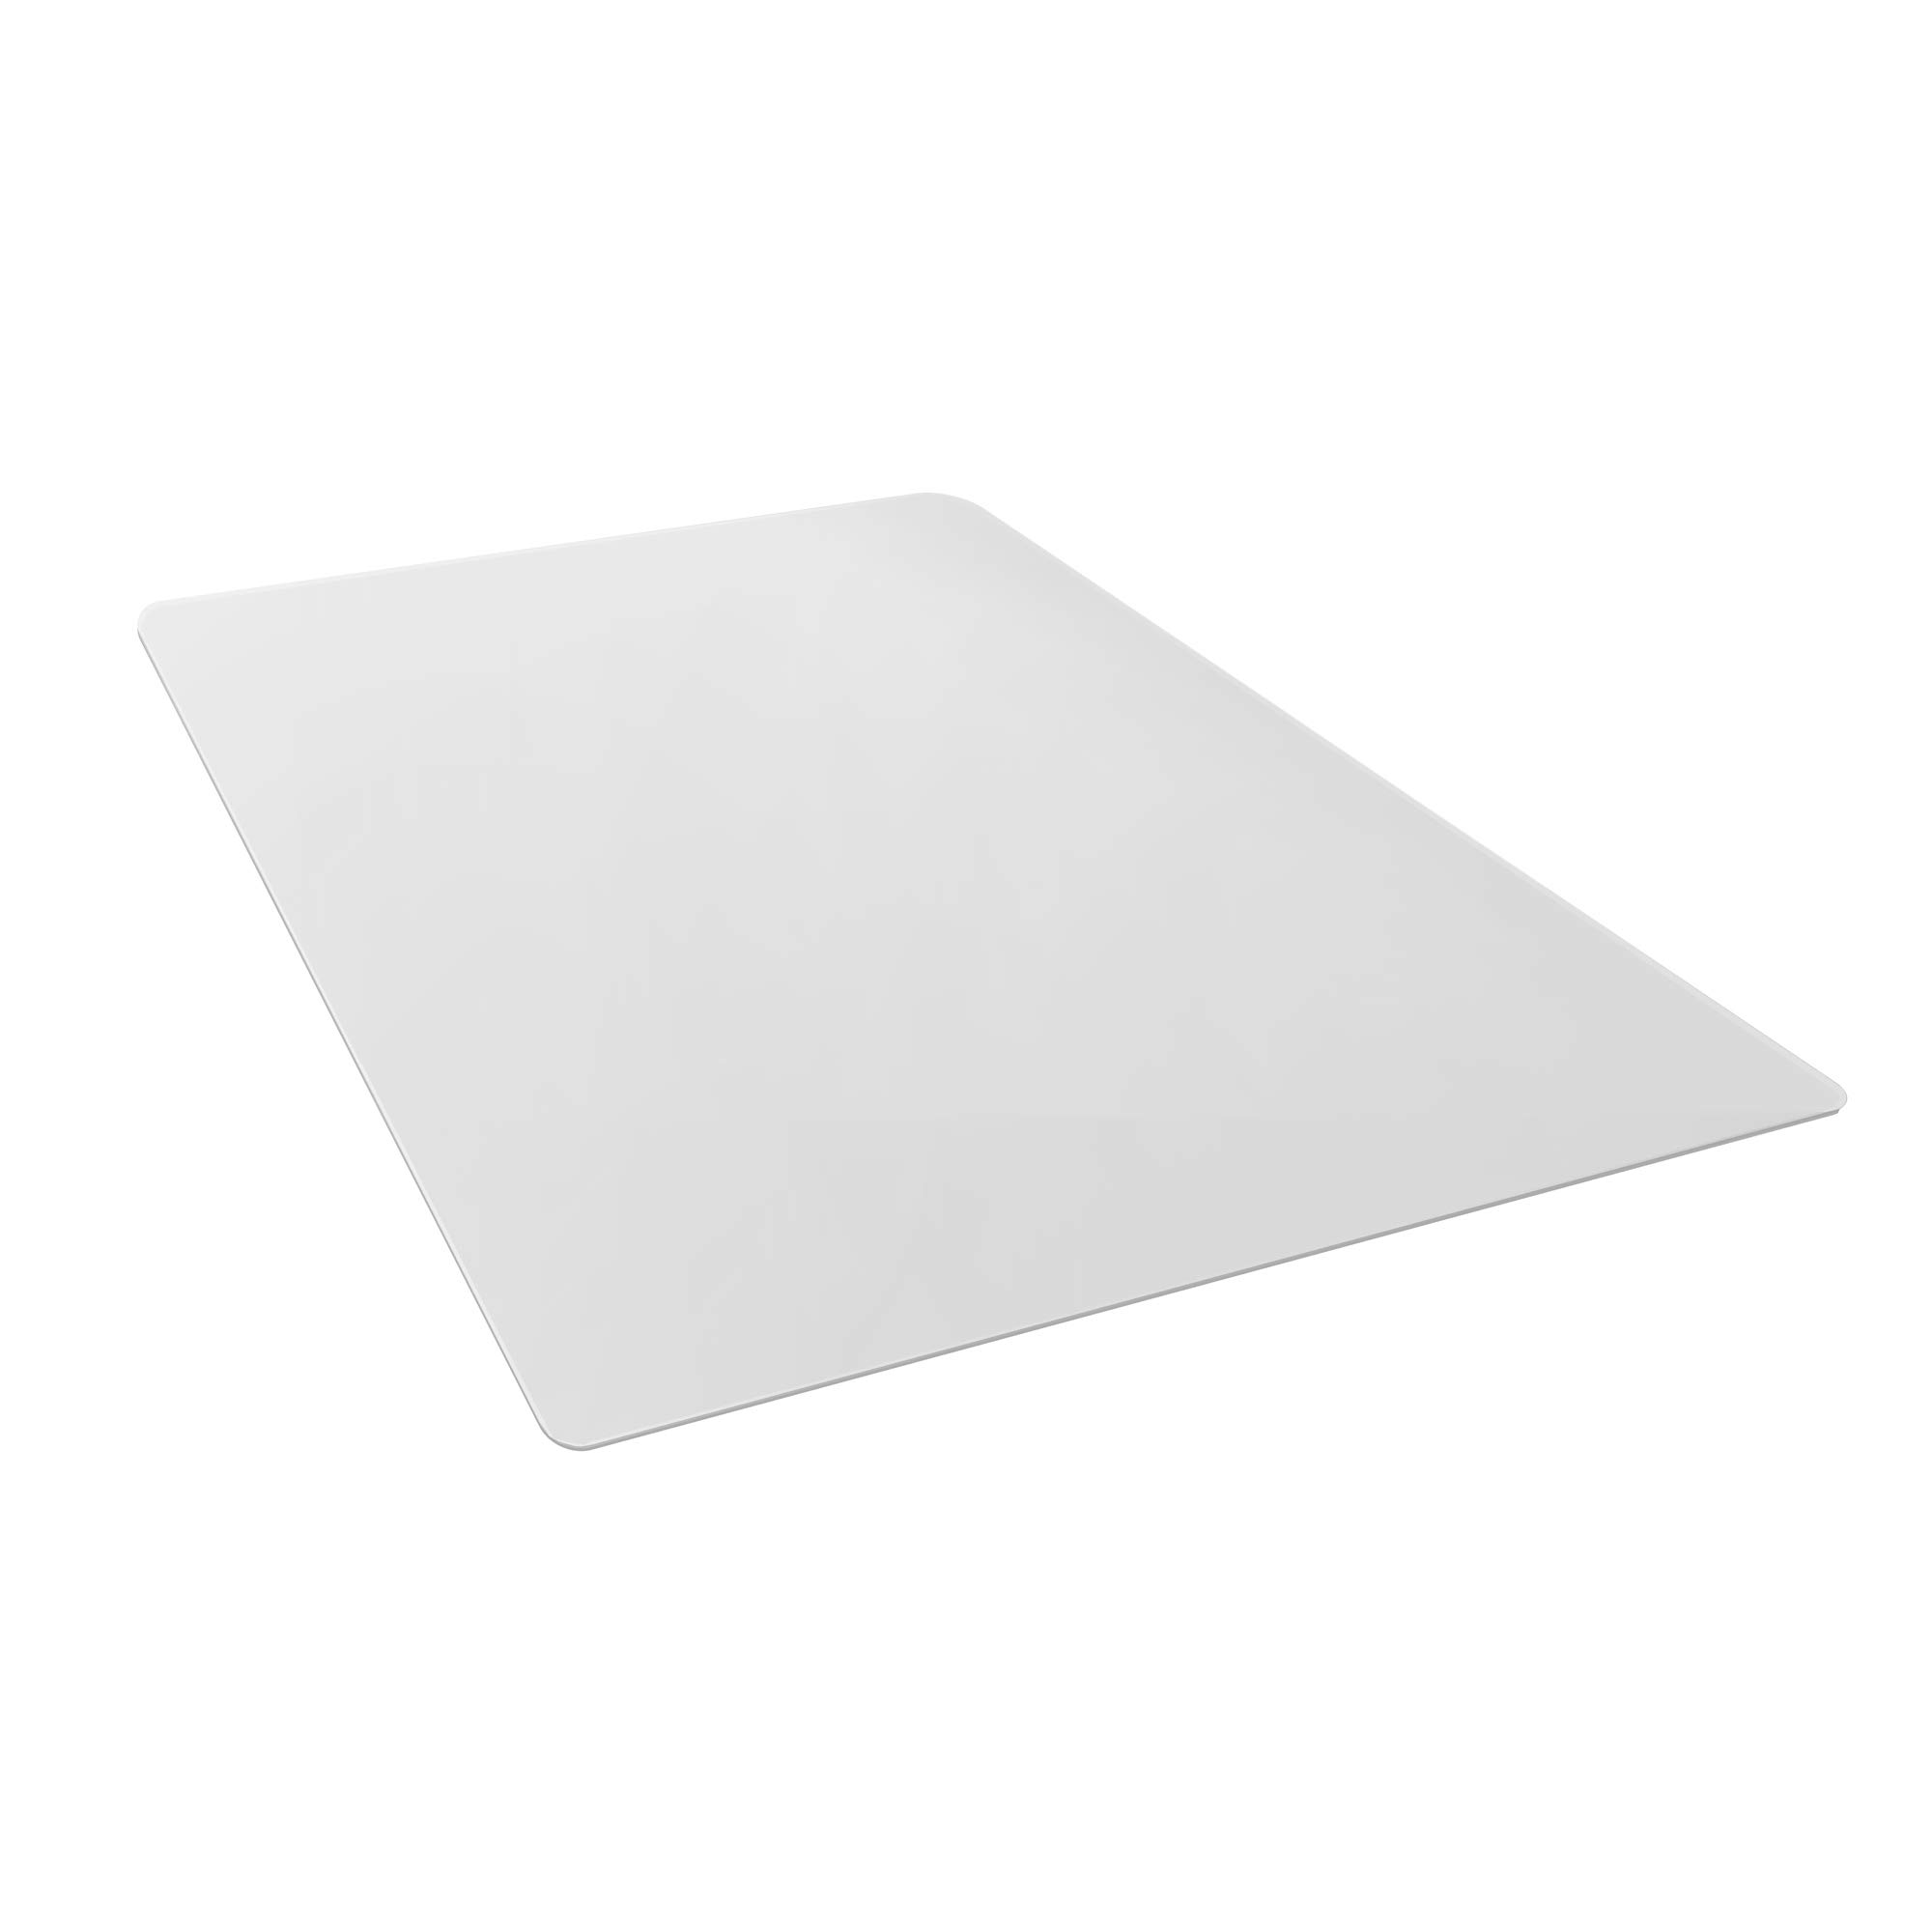 AmazonBasics Polycarbonate Anti-Slip Hard Floor Chair Mat - 47'' x 35'' by AmazonBasics